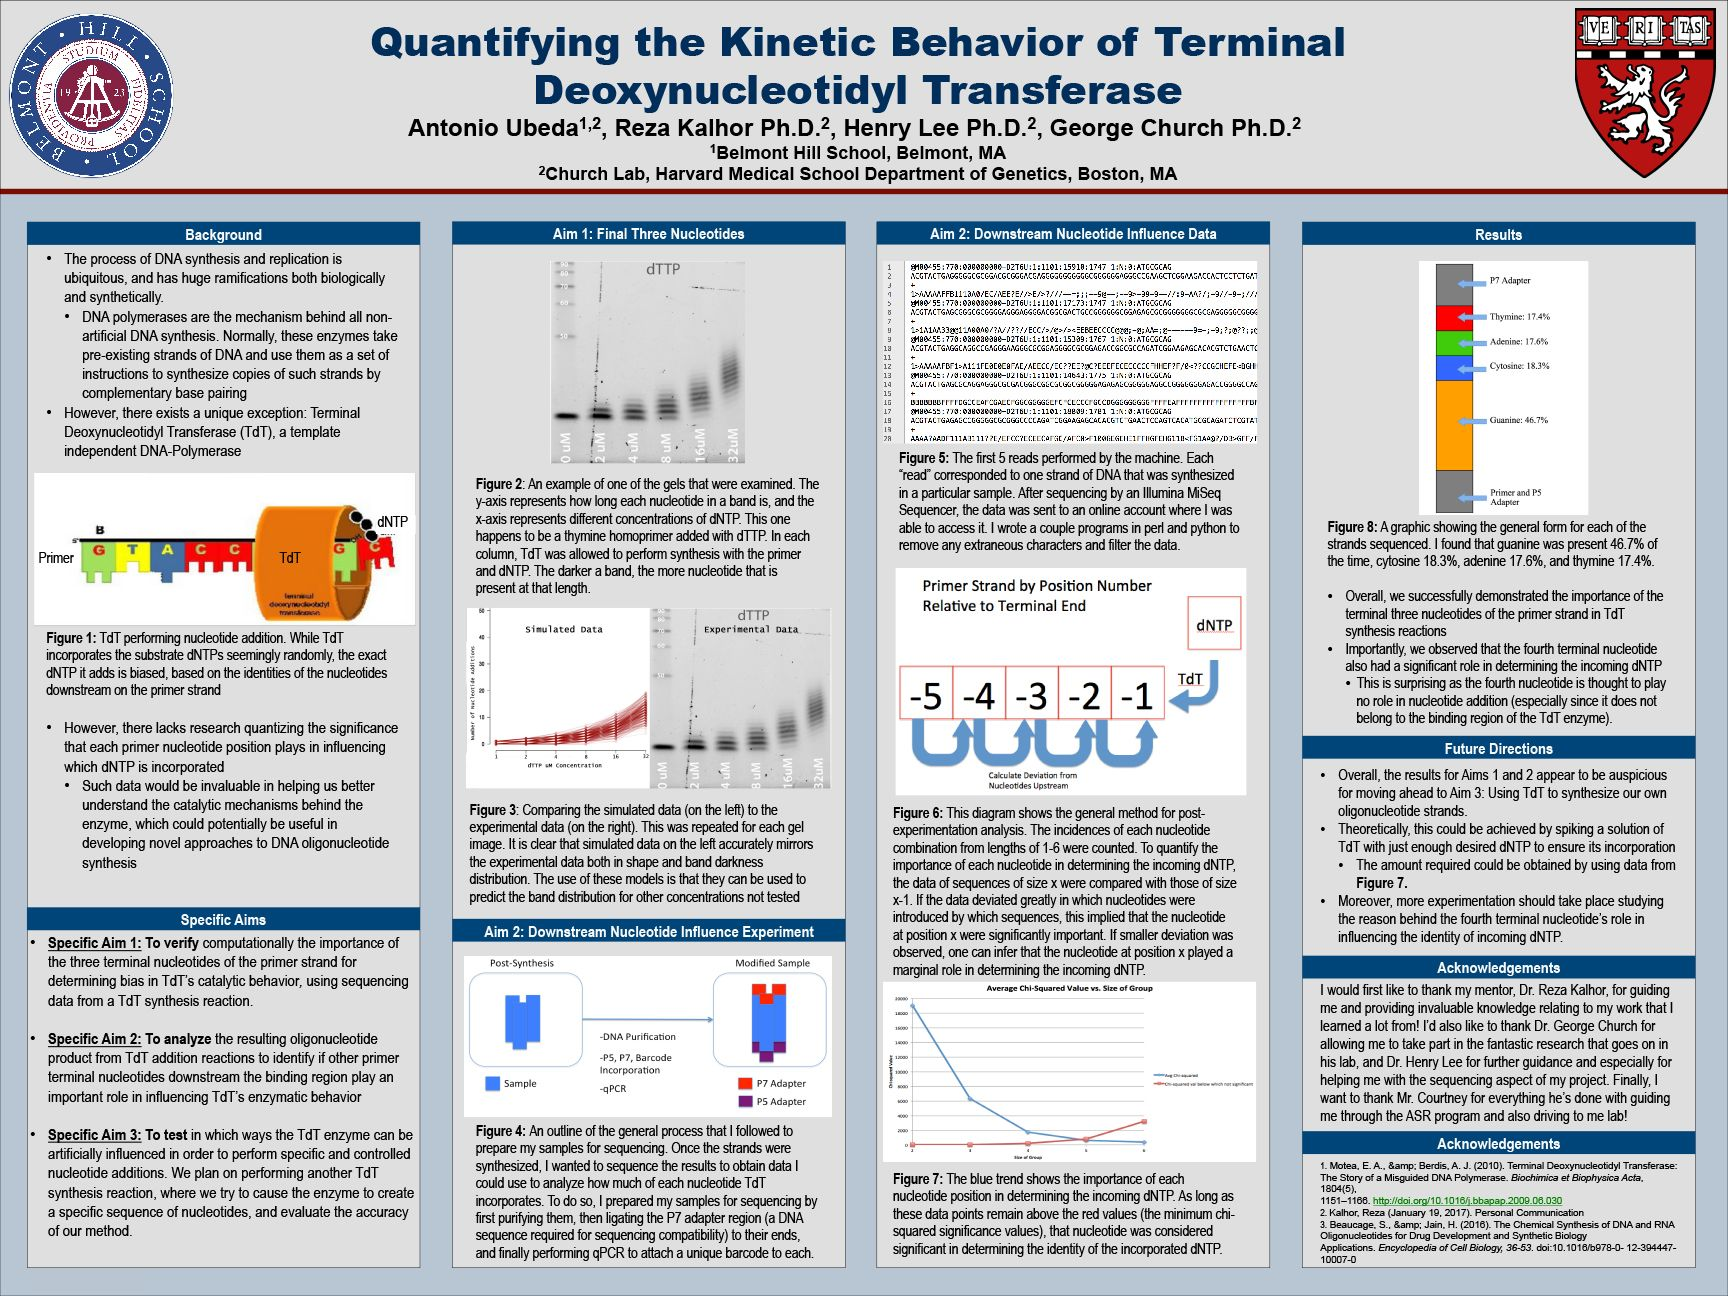 Antonio Ubeda '18 - Quantifying the Kinetic Behavior of Terminal Deoxynucleotidyl Transferase